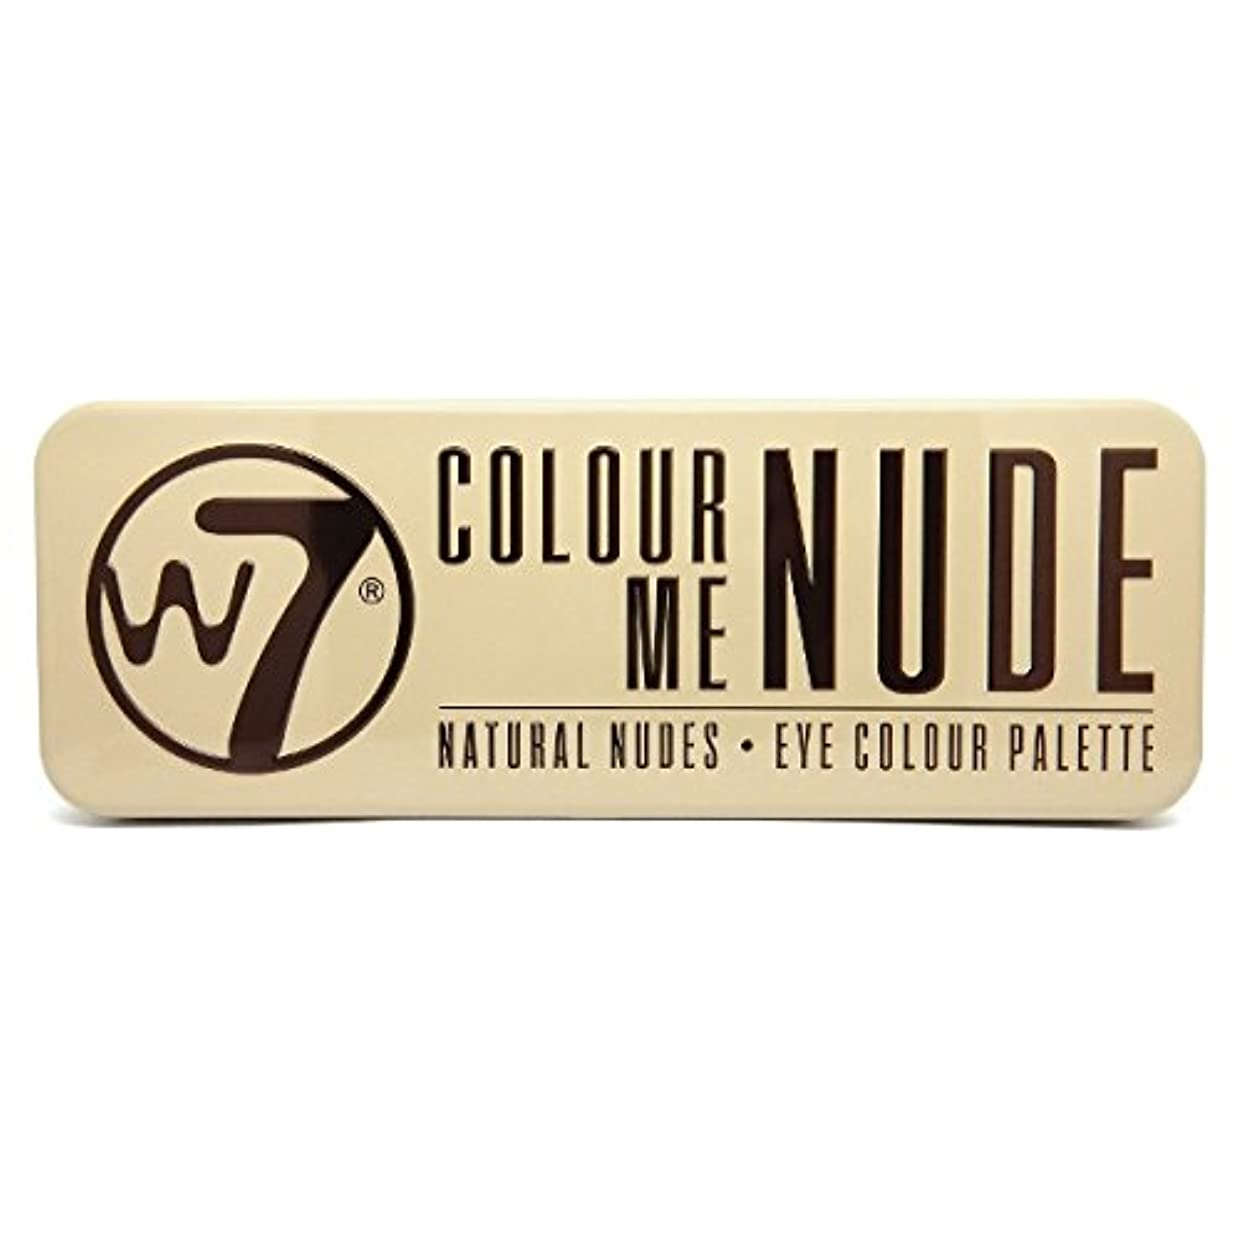 領域襲撃ブロックW7 Colour Me Nude Natural Nudes Eye Colour Palette (並行輸入品)